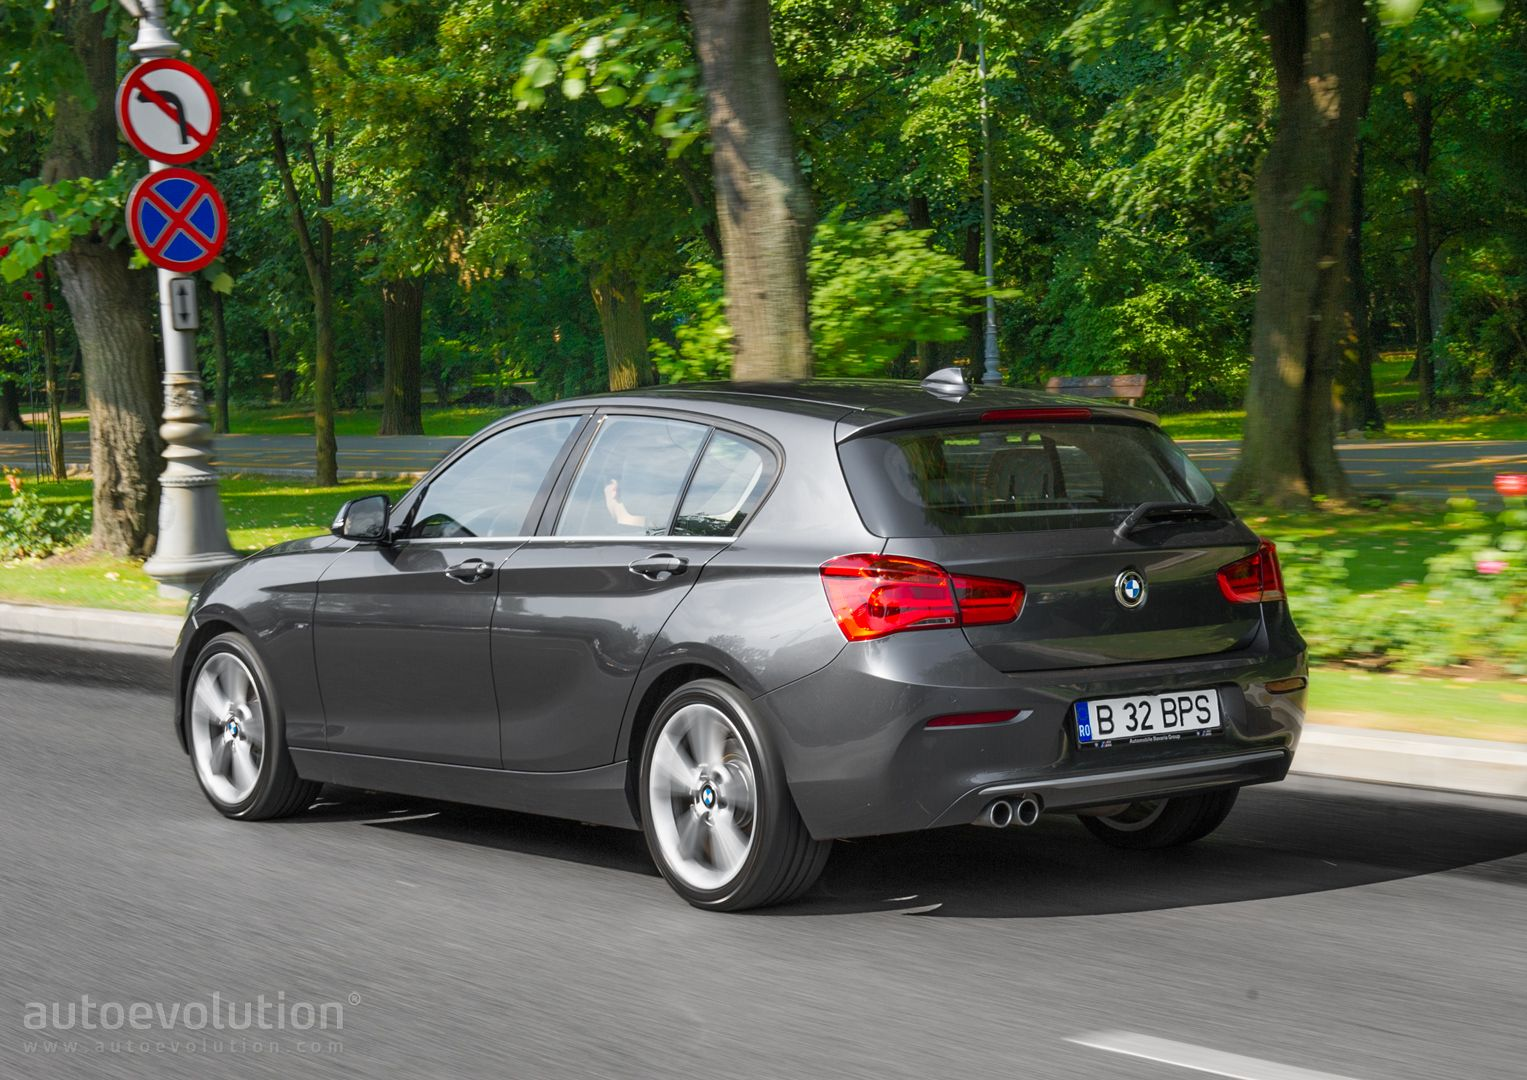 BMW spills the beans on new 390kW M850i xDrive